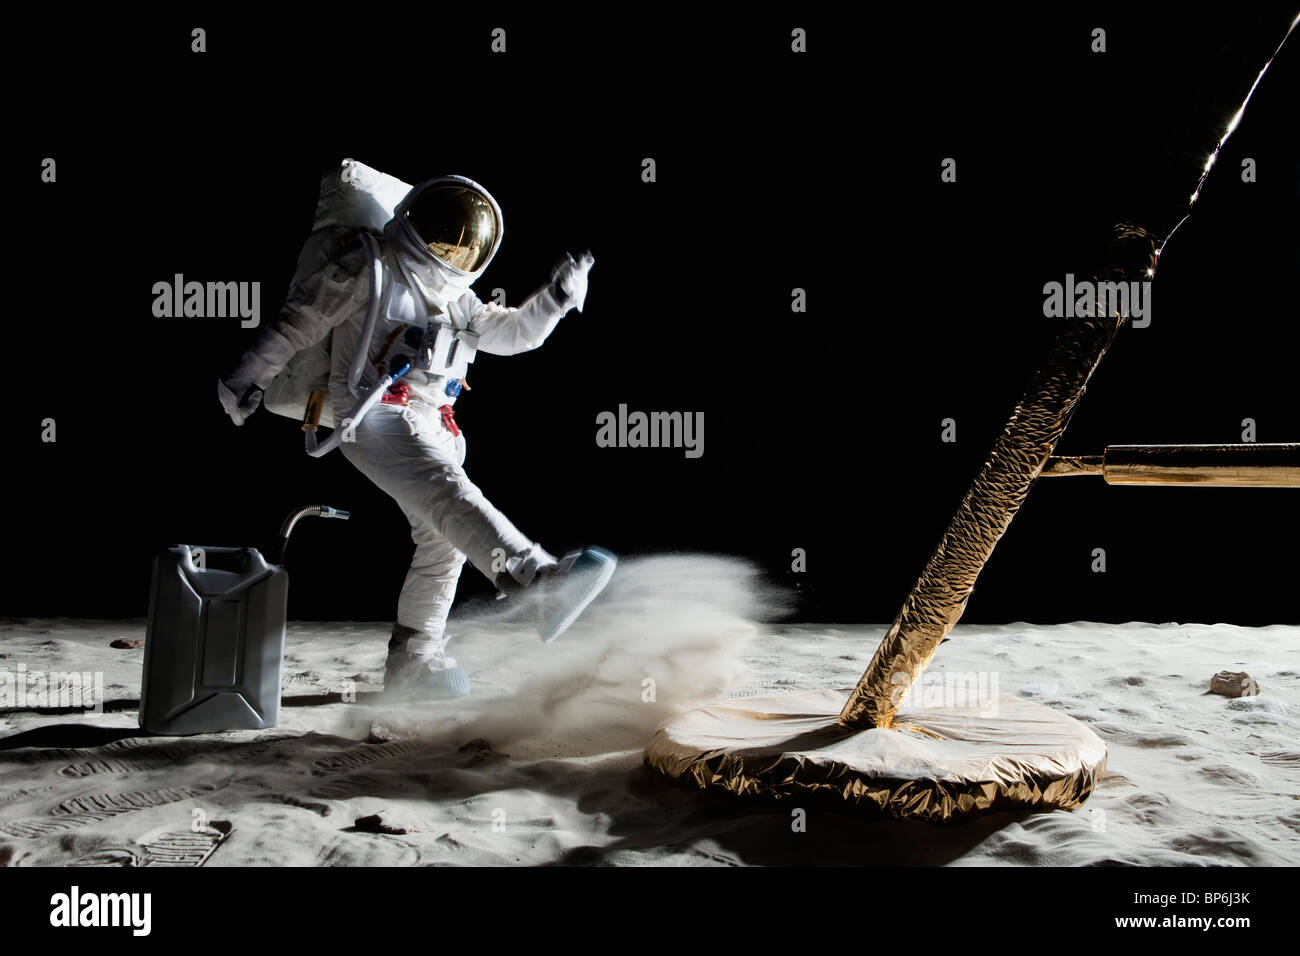 An angry astronaut out of gas on the moon - Stock Image